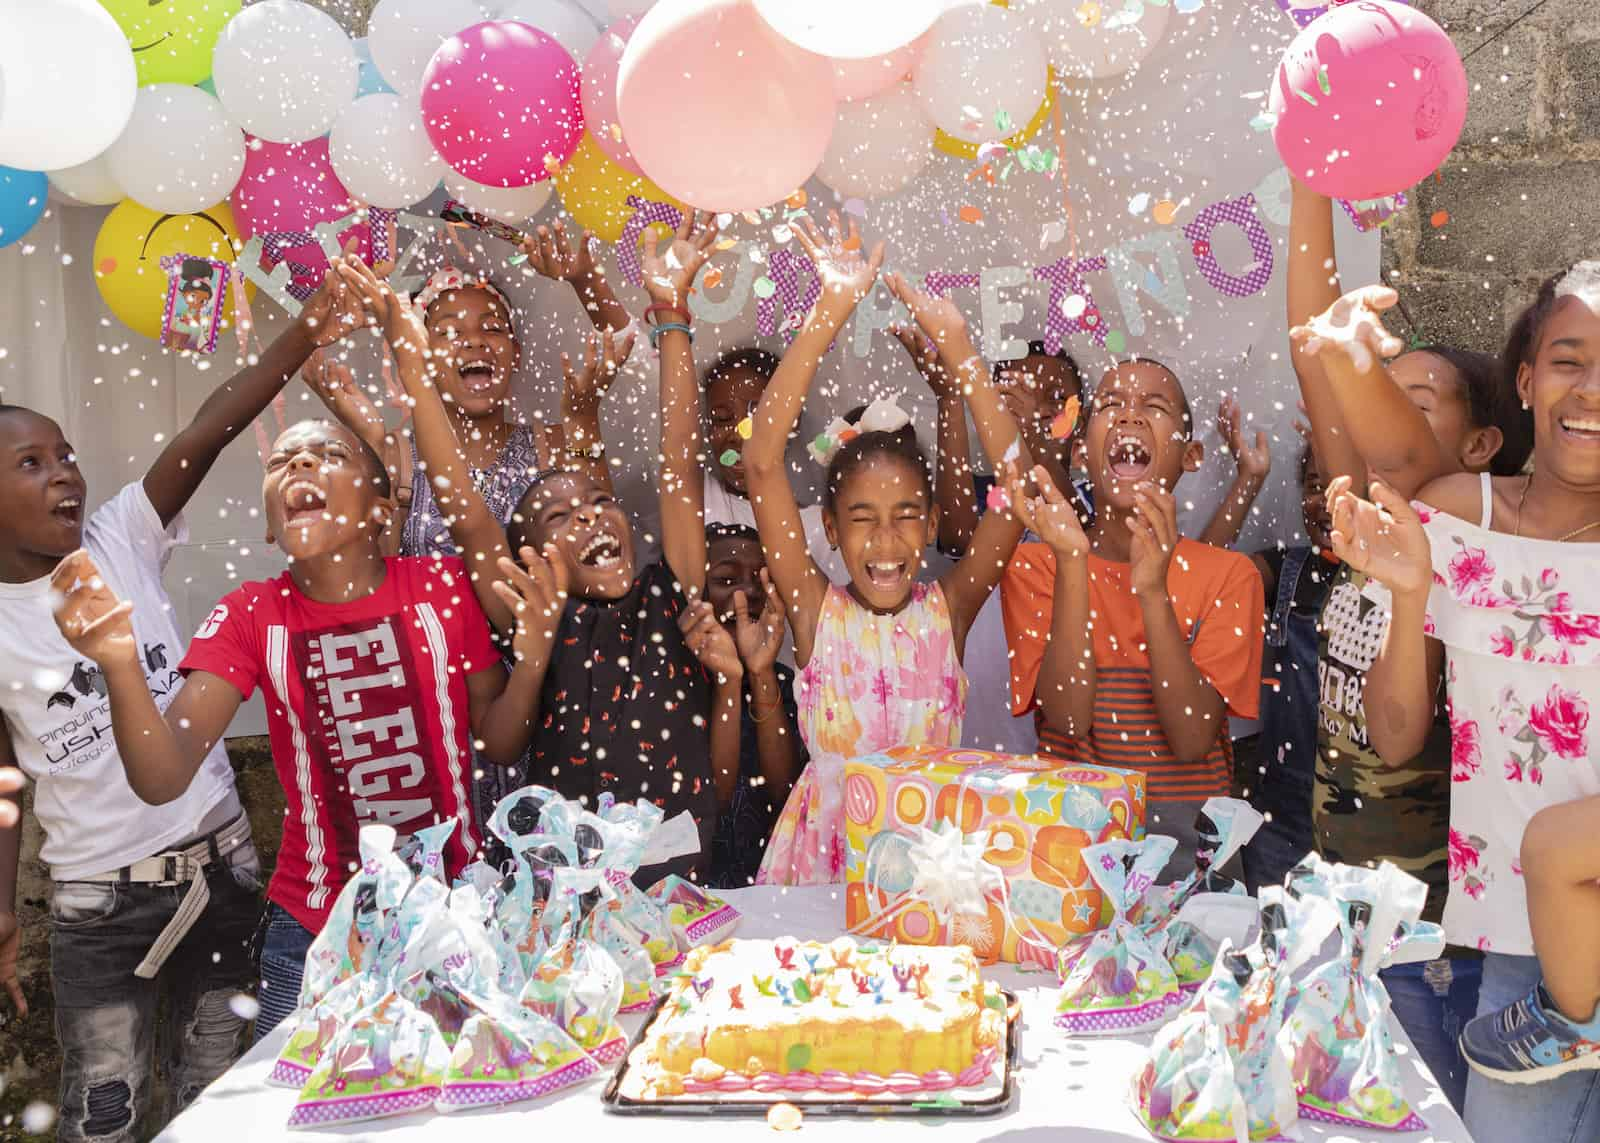 A group of children throw confetti in the air, standing in front of a table with a birthday cake on it.